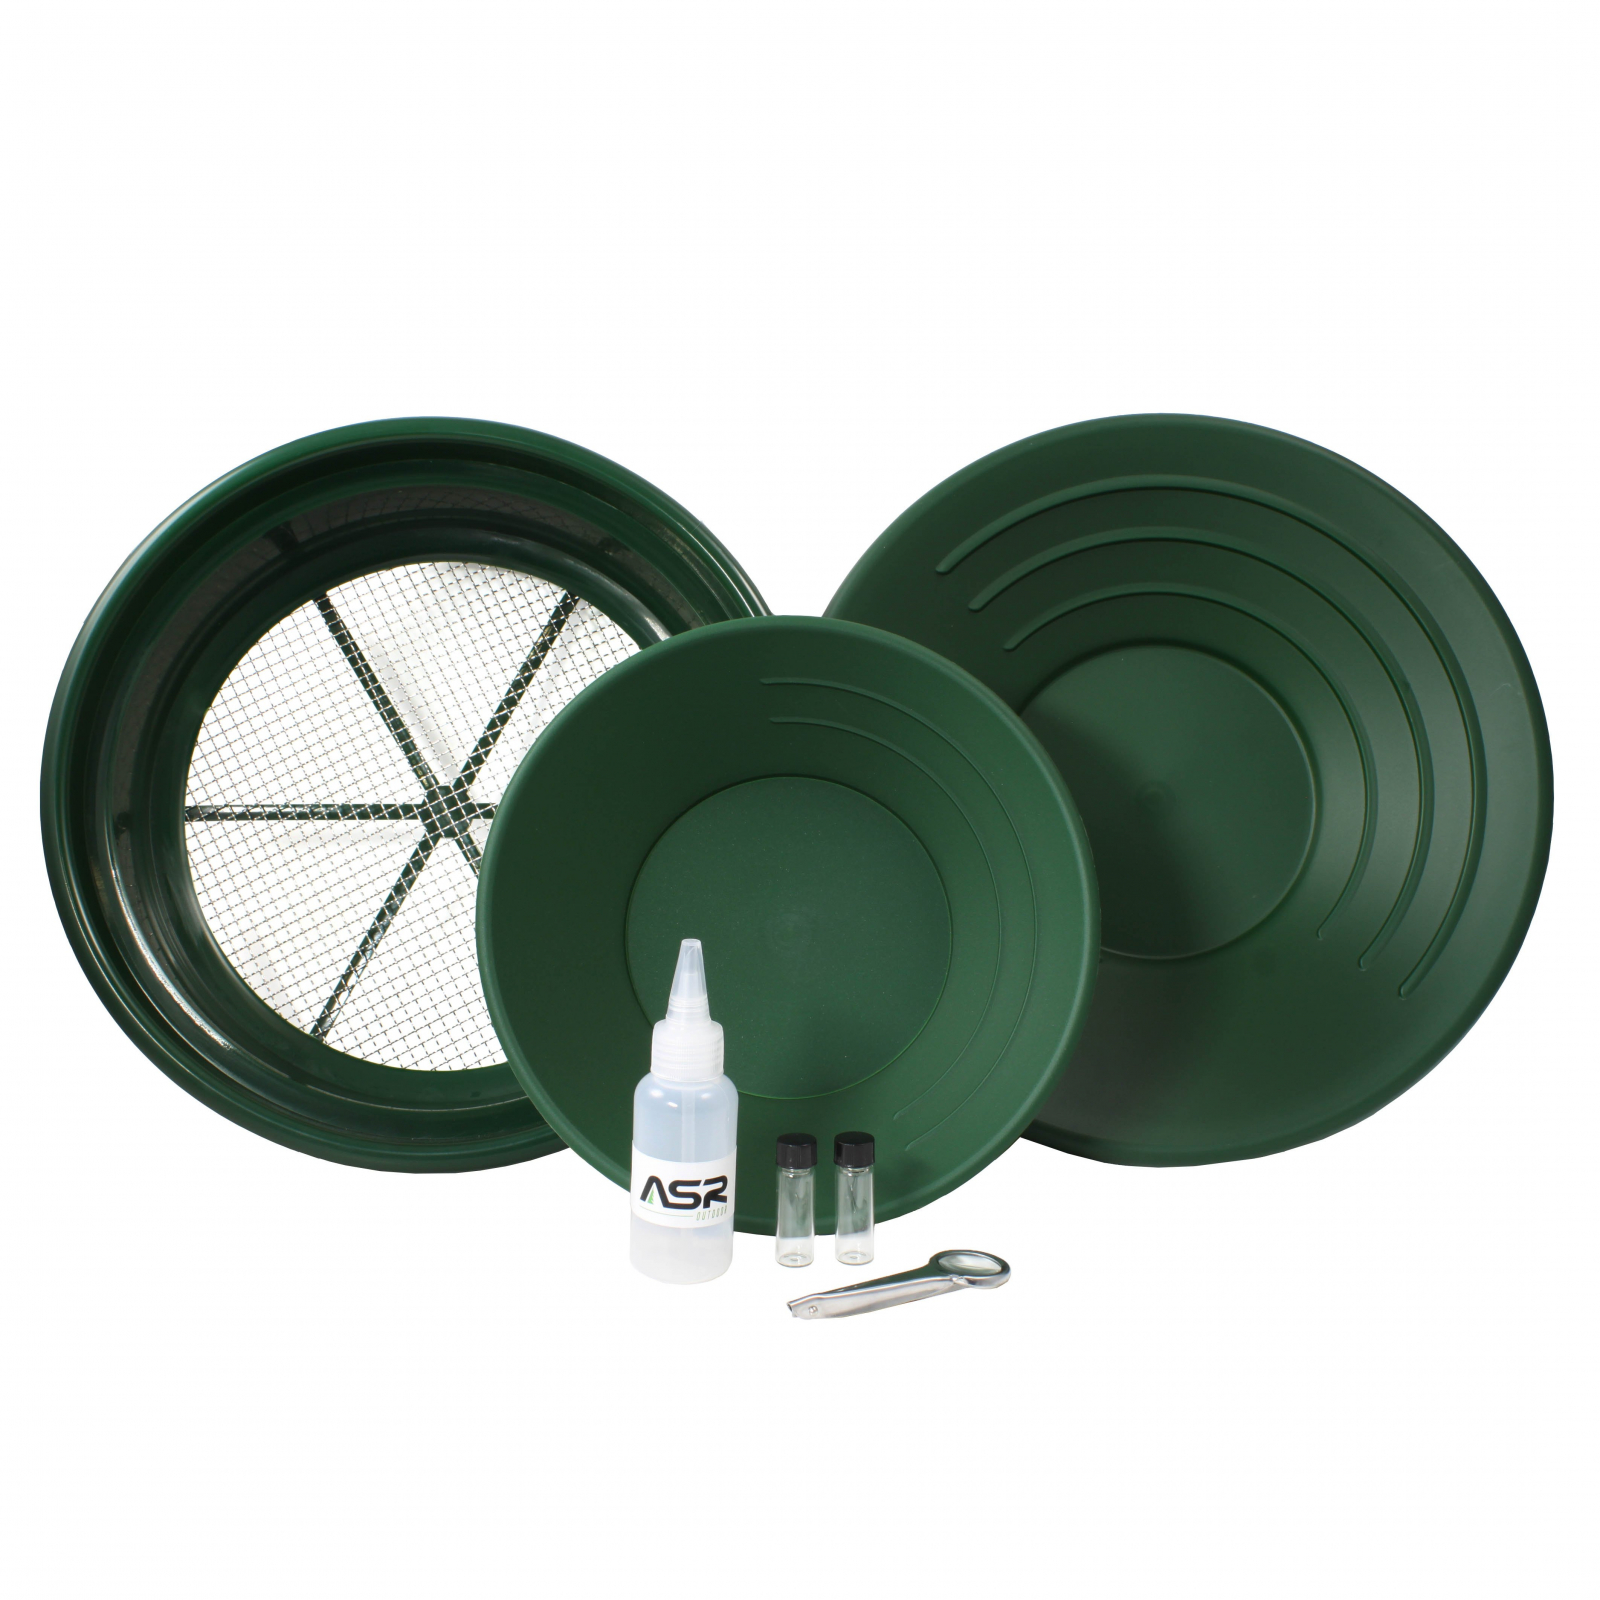 ASR Outdoor Gold Rush Gold Prospecting Kit Classifiers Vials Sifting Pans - 7pc